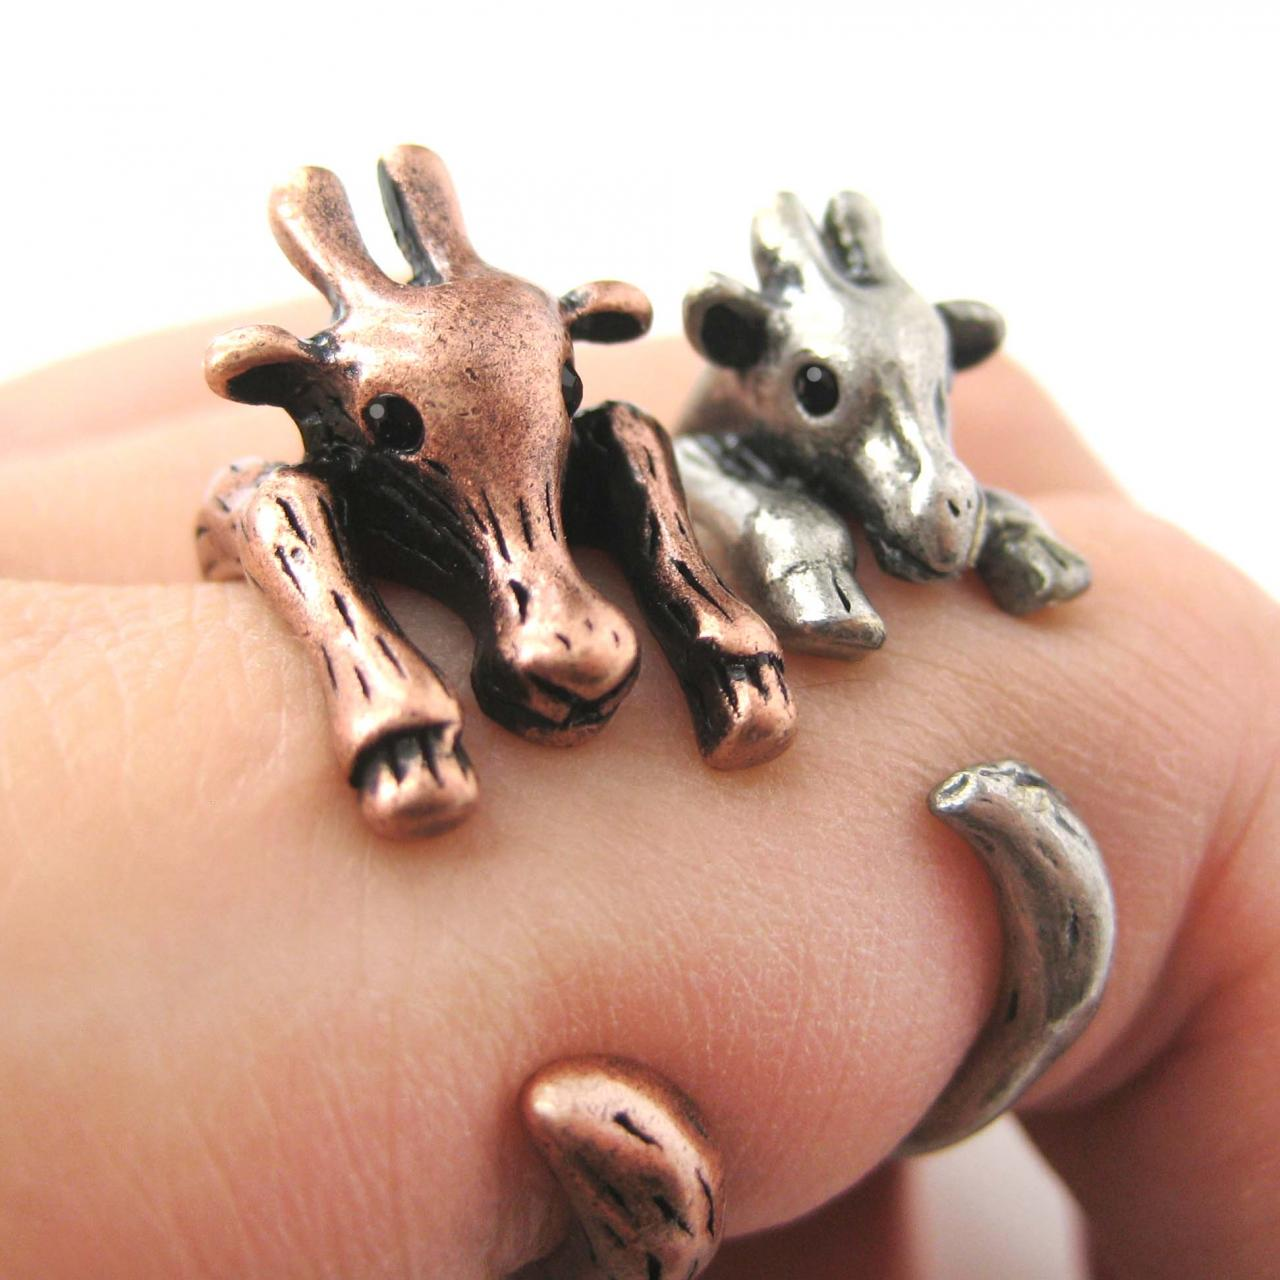 Large Giraffe Animal Wrap Ring In Copper Sizes 4 To 9 US Realistic And Cute!